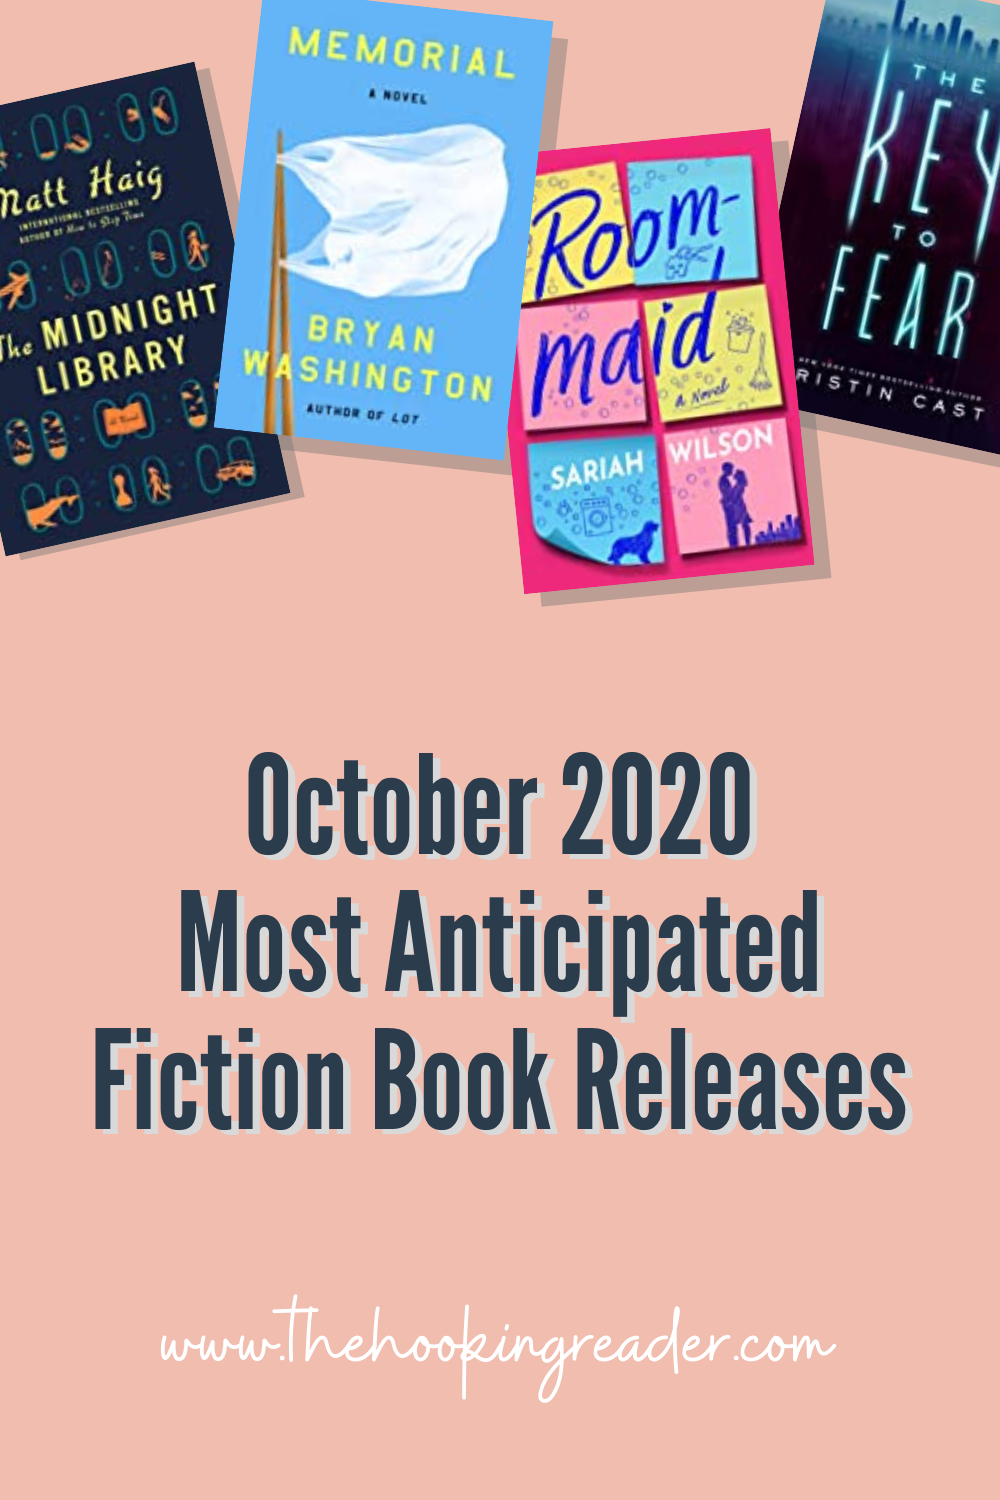 October 2020 Poetry & Fiction Book Releases